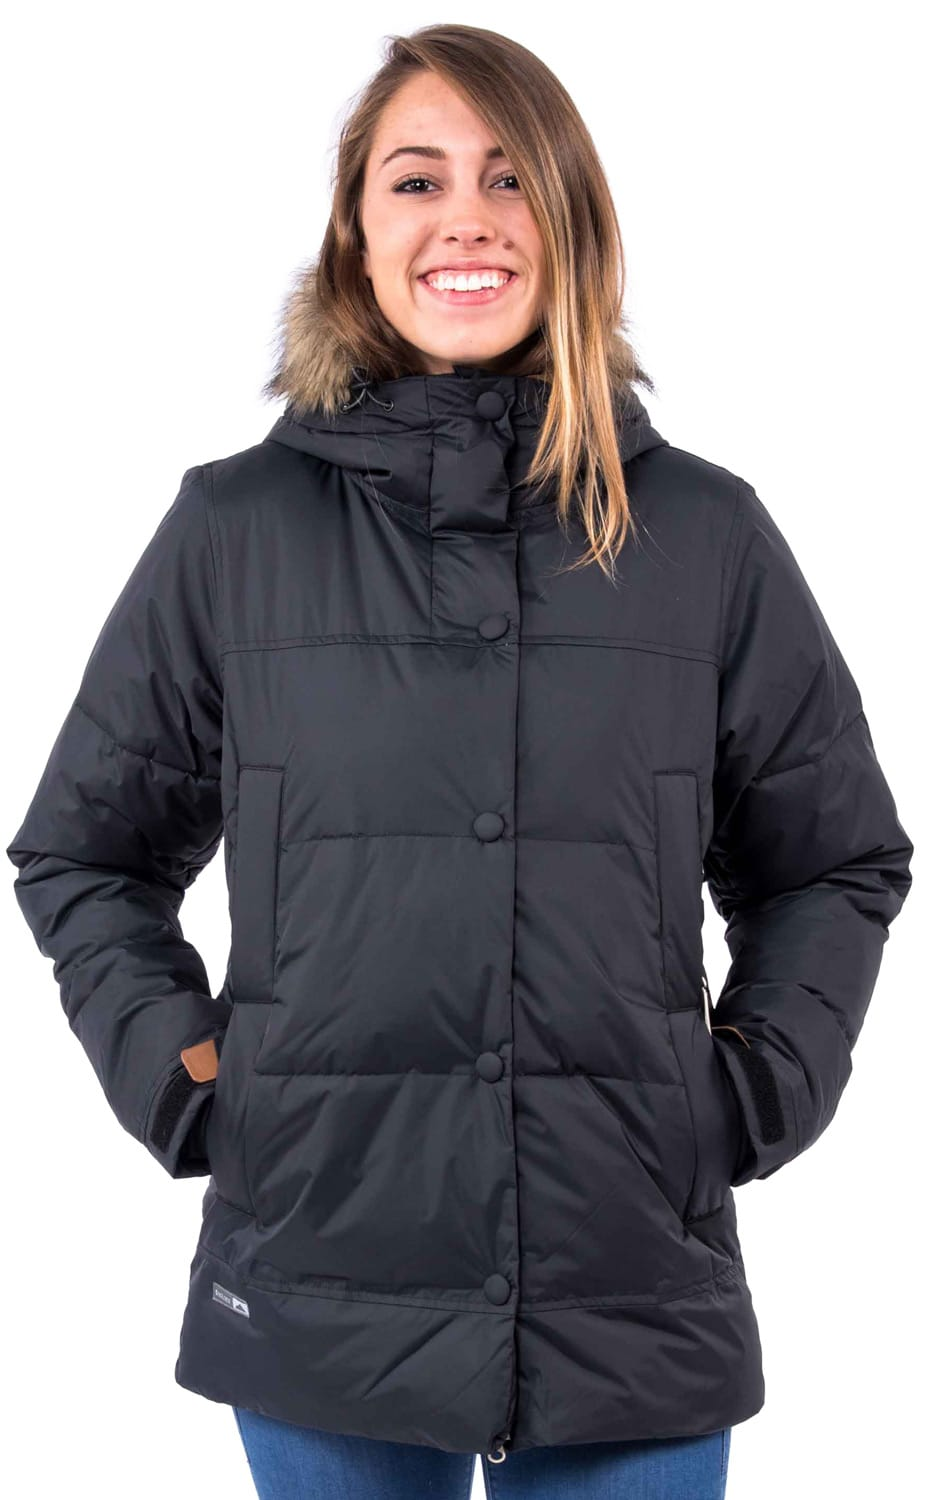 On Sale Holden Bliss Down Snowboard Jacket - Womens up to 40% off